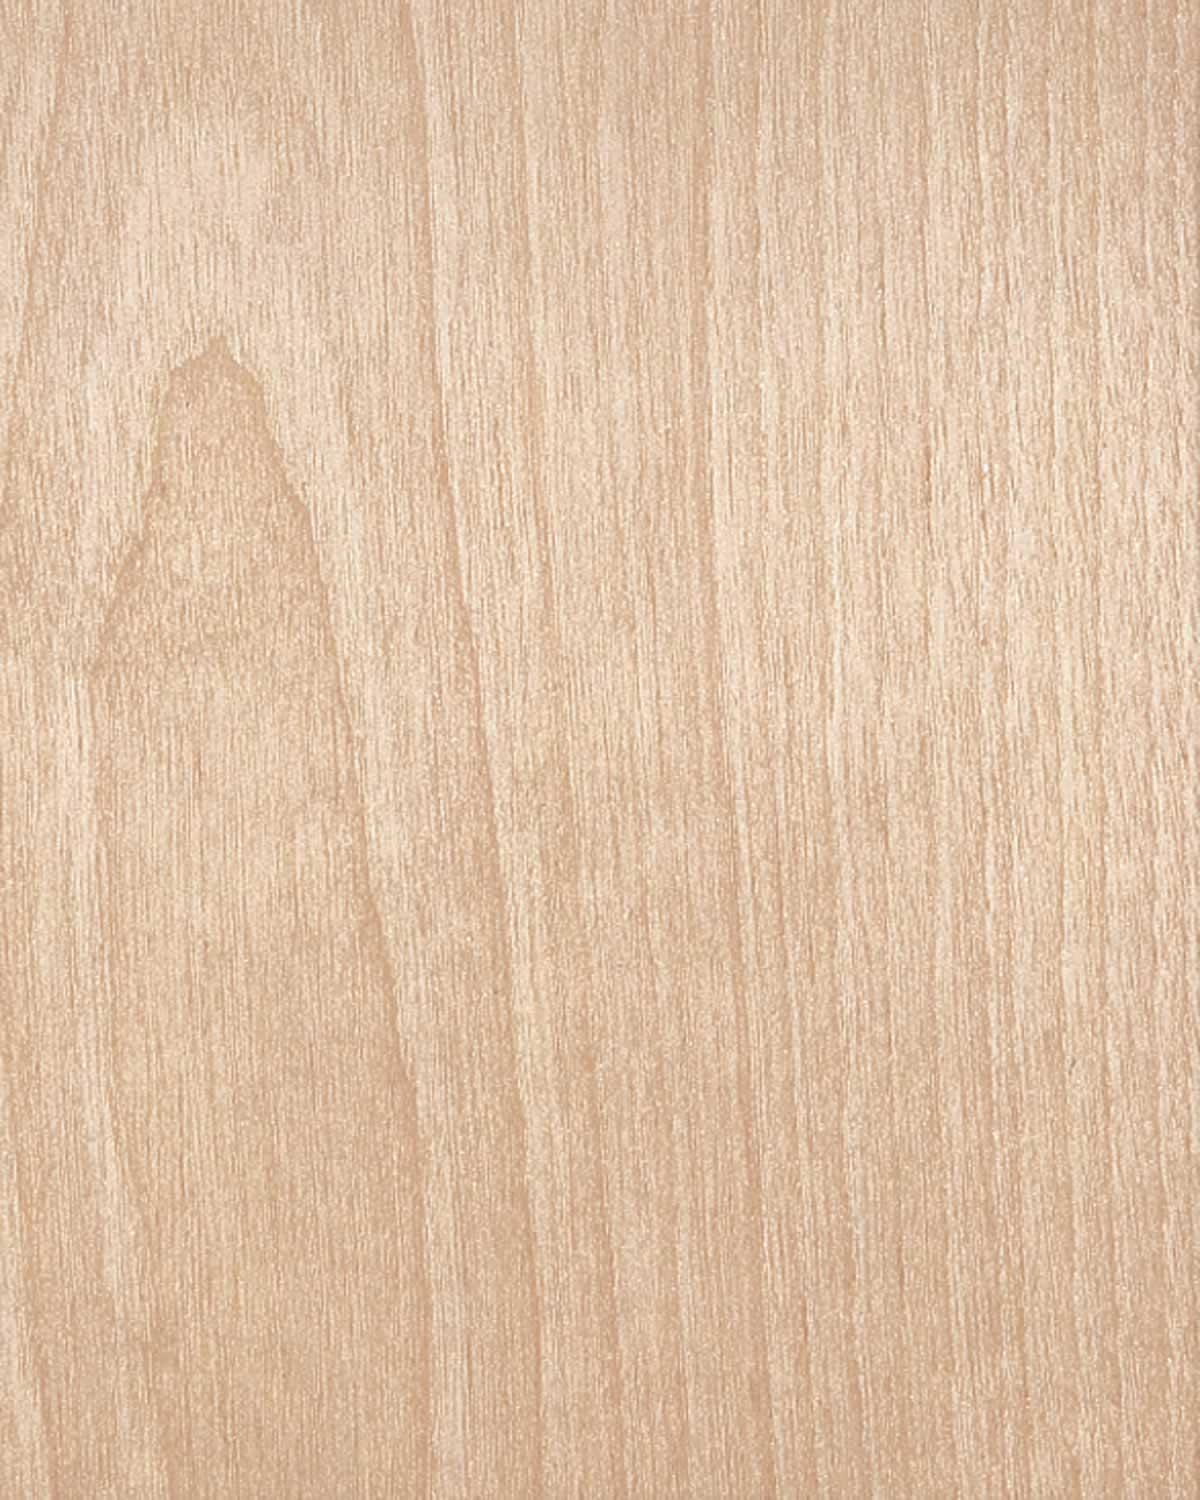 Ambienta architectural solutions wood